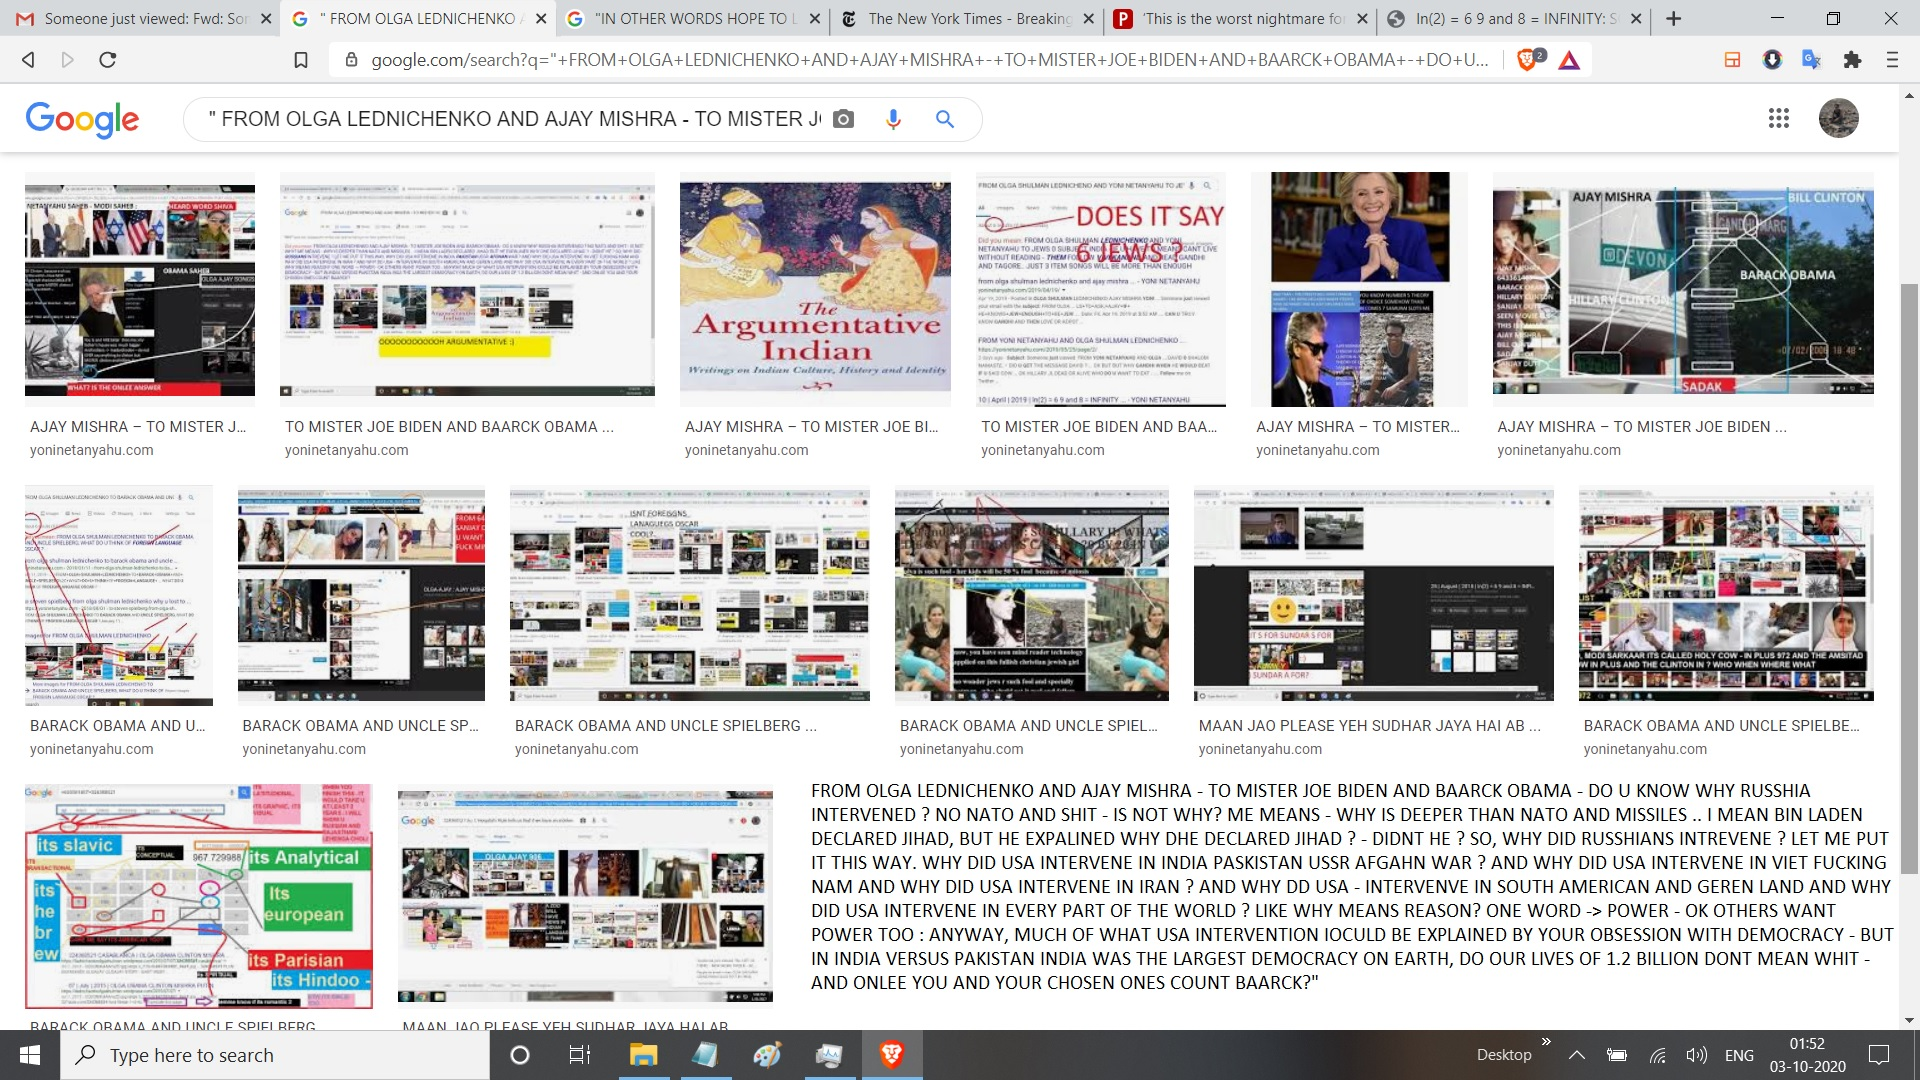 """"""" FROM OLGA LEDNICHENKO AND AJAY MISHRA - TO MISTER JOE BIDEN AND BAARCK OBAMA - DO U KNOW WHY RUSSHIA INTERVENED ? NO NATO AND SHIT - IS NOT WHY? ME MEANS - WHY IS DEEPER THAN NATO AND MISSILES .. I MEAN BIN LADEN DECLARED JIHAD, BUT HE EXPALINED WHY DHE DECLARED JIHAD ? - DIDNT HE ? SO, WHY DID RUSSHIANS INTREVENE ? LET ME PUT IT THIS WAY. WHY DID USA INTERVENE IN INDIA PASKISTAN USSR AFGAHN WAR ? AND WHY DID USA INTERVENE IN VIET FUCKING NAM AND WHY DID USA INTERVENE IN IRAN ? AND WHY DD USA - INTERVENVE IN SOUTH AMERICAN AND GEREN LAND AND WHY DID USA INTERVENE IN EVERY PART OF THE WORLD ? LIKE WHY MEANS REASON? ONE WORD -> POWER - OK OTHERS WANT POWER TOO : ANYWAY, MUCH OF WHAT USA INTERVENTION IOCULD BE EXPLAINED BY YOUR OBSESSION WITH DEMOCRACY - BUT IN INDIA VERSUS PAKISTAN INDIA WAS THE LARGEST DEMOCRACY ON EARTH, DO OUR LIVES OF 1.2 BILLION DONT MEAN WHIT - AND ONLEE YOU AND YOUR CHOSEN ONES COUNT BAARCK?"""""""